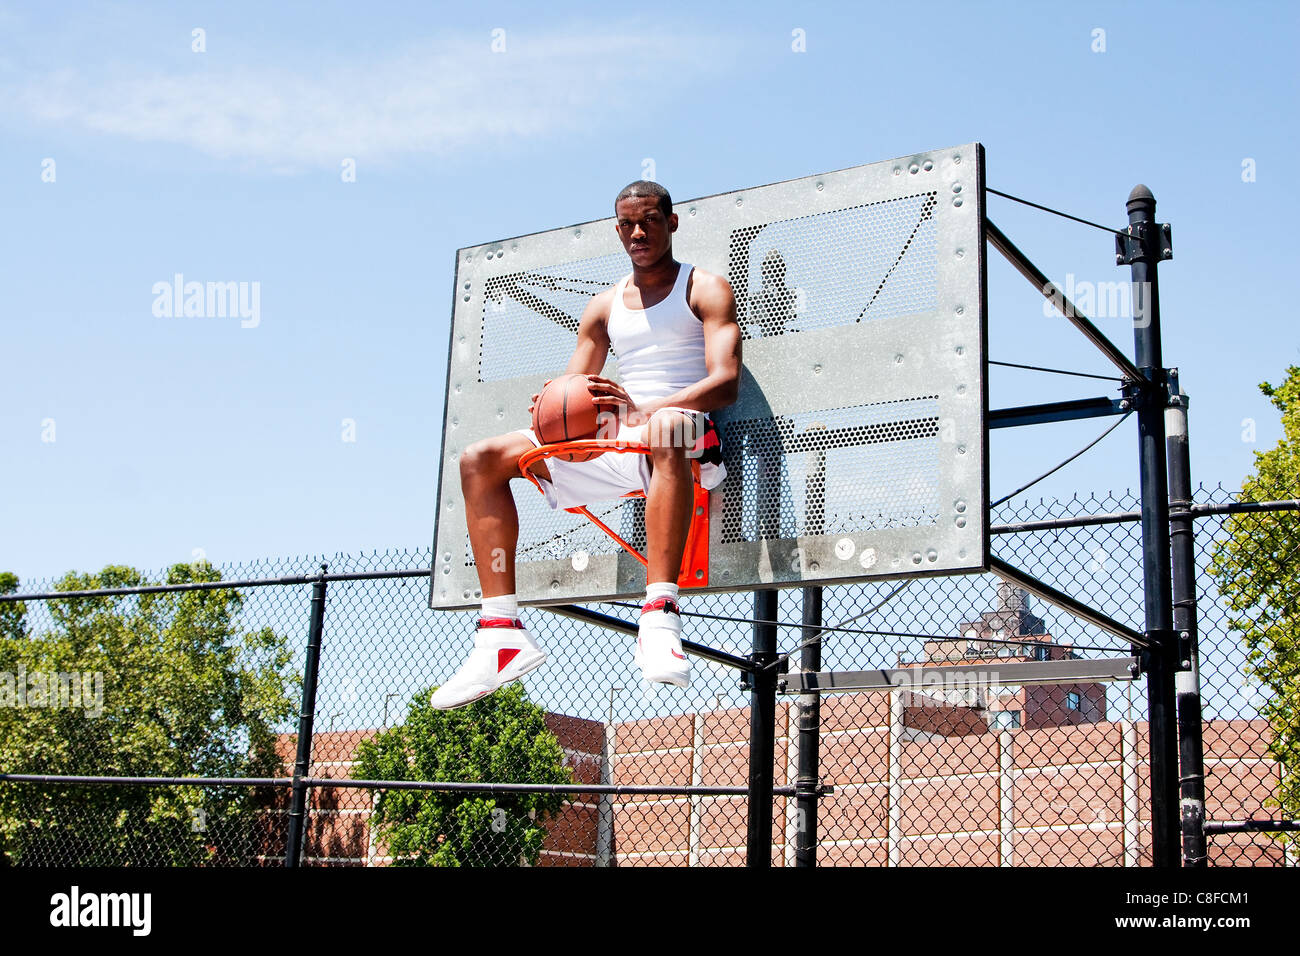 Basketball player sitting in hoop - Stock Image